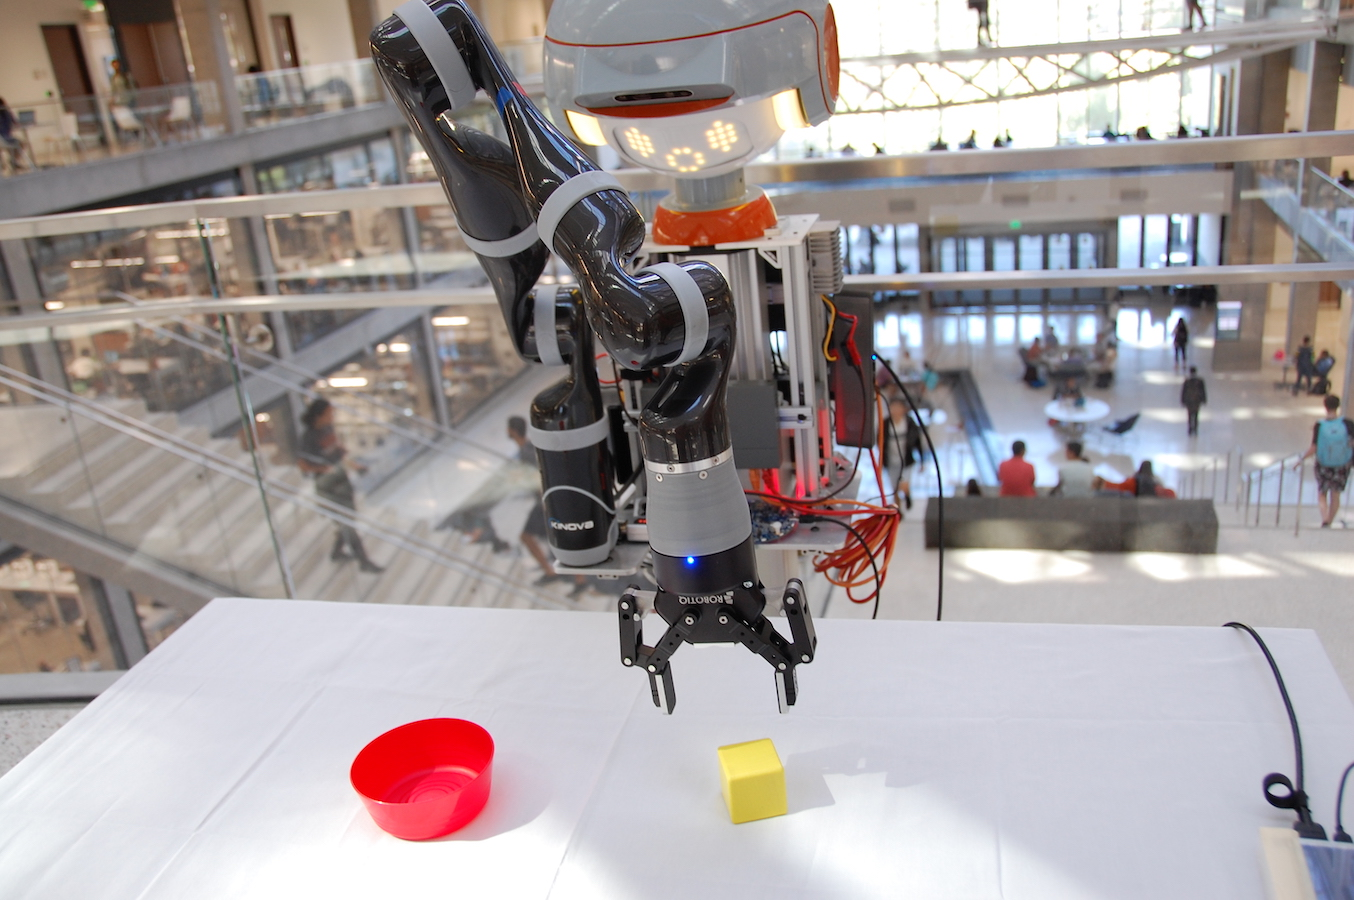 A mobile